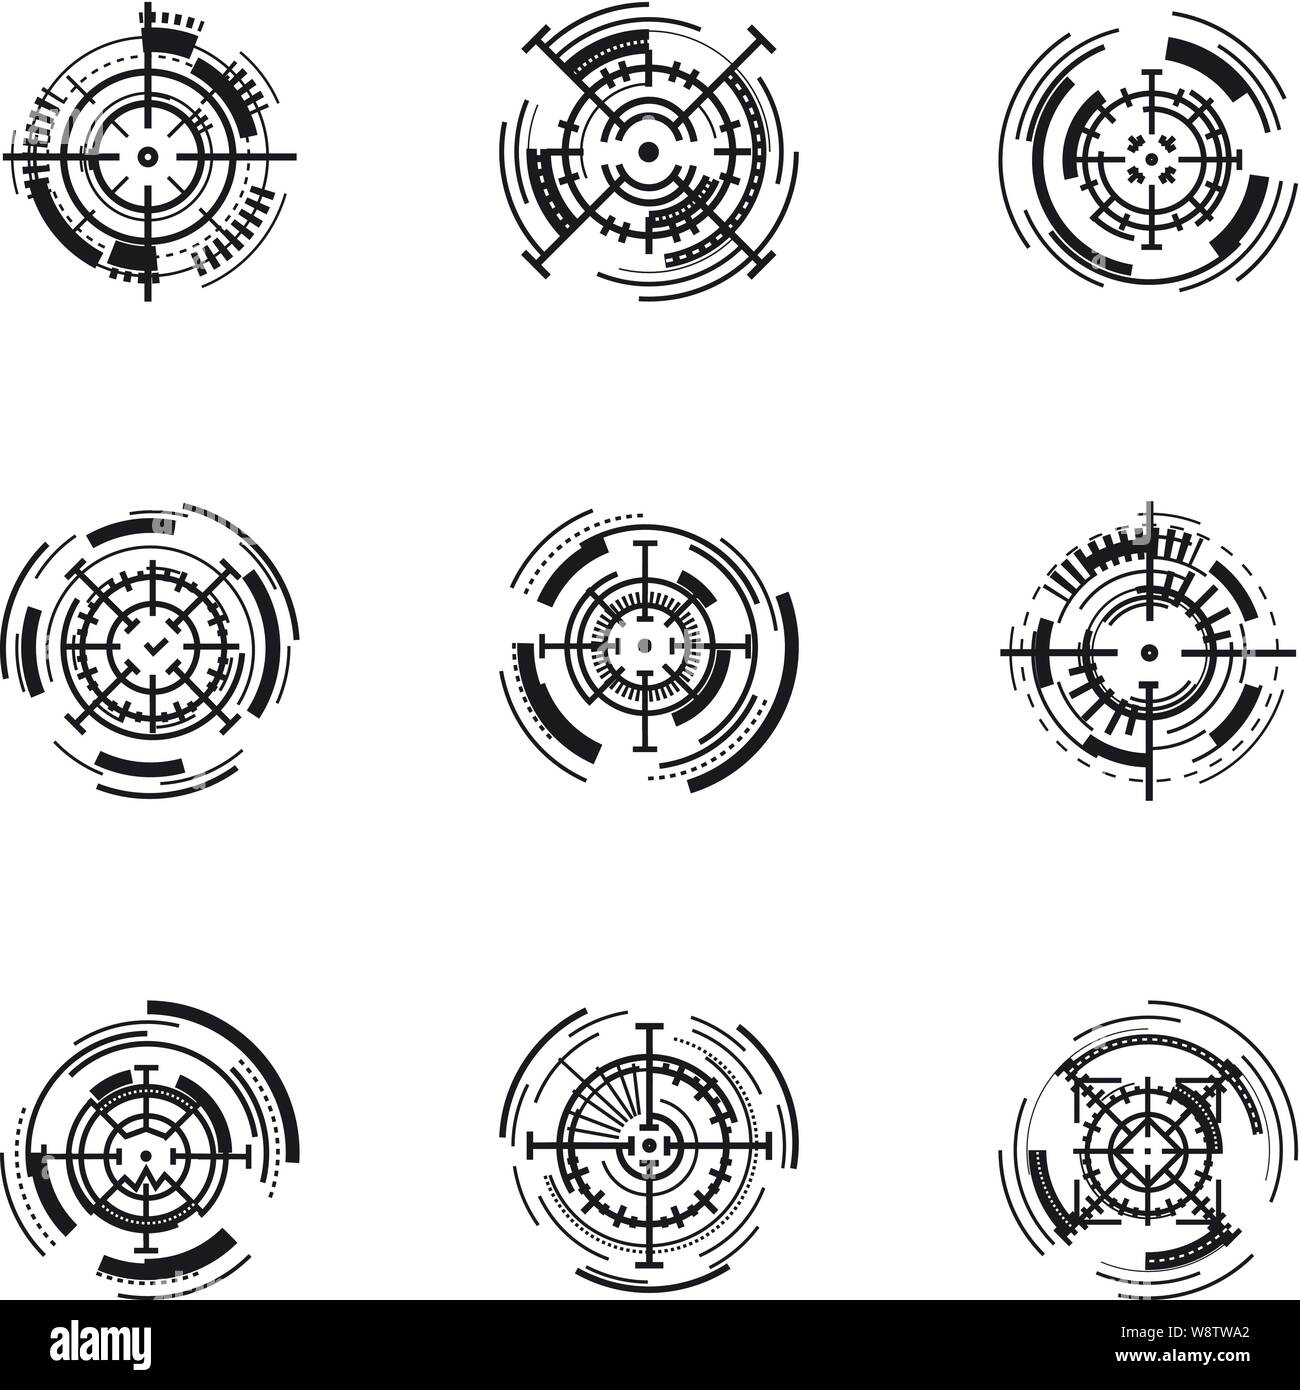 modern target aim icon set simple set of 9 modern target aim vector icons for web design isolated on white background stock vector image art alamy https www alamy com modern target aim icon set simple set of 9 modern target aim vector icons for web design isolated on white background image263619498 html